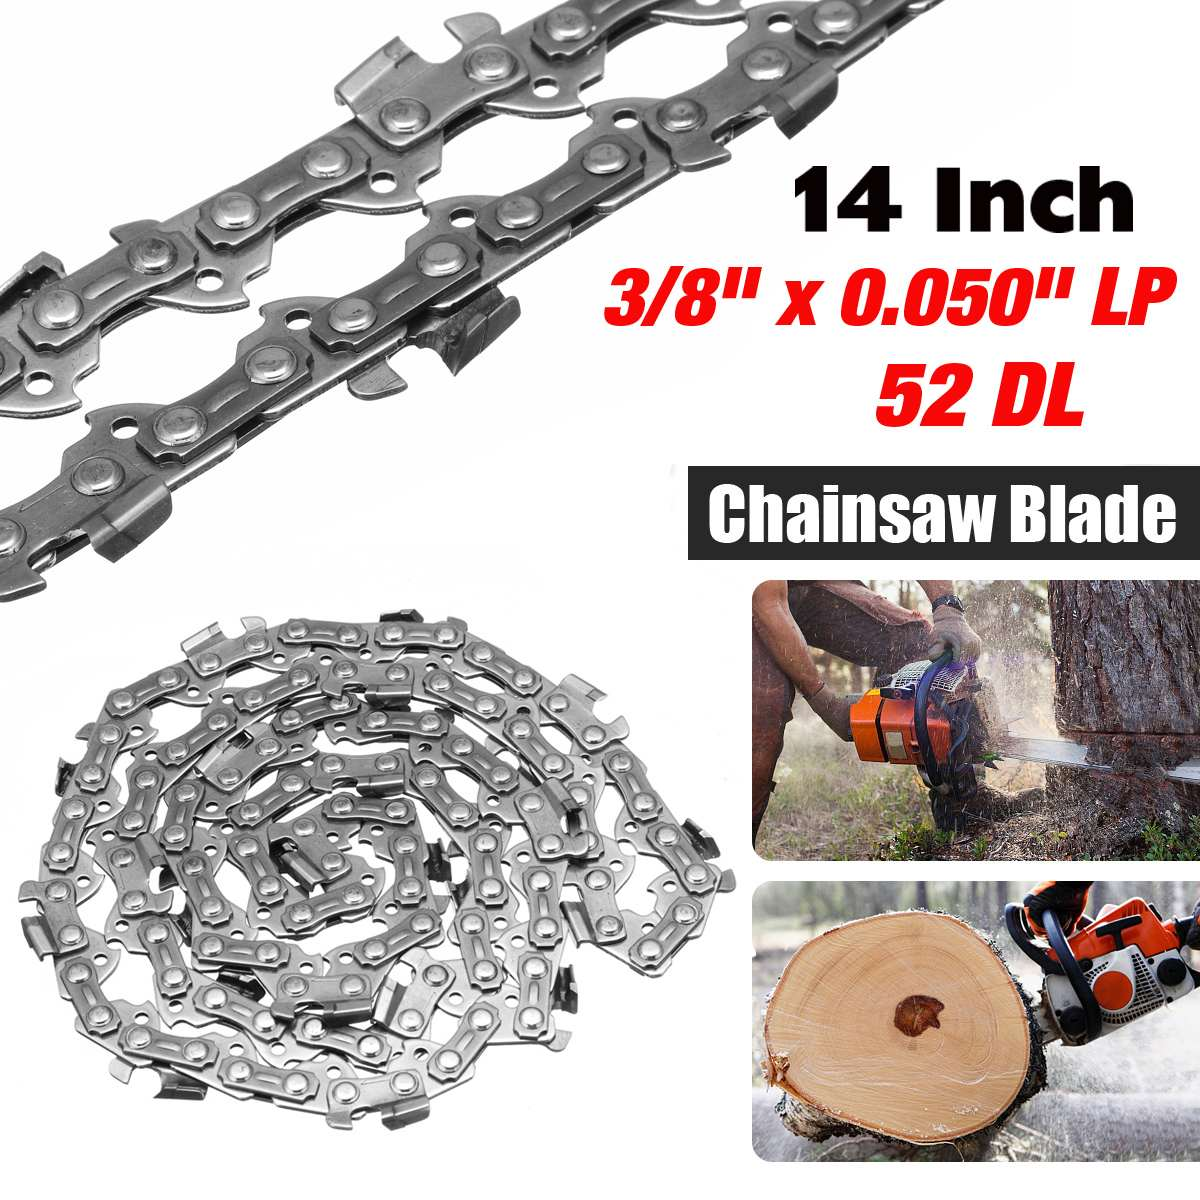 14 inch 3/8 x 0.050 LP x 52 DL Garden Chain Saws Alloy Solid Carbide Chainsaw Chain Link Bar Power Tool parts 18 inch chainsaw chain 68 link bar 1 6mm x 0 325 lp garden chains saws alloy power tool parts